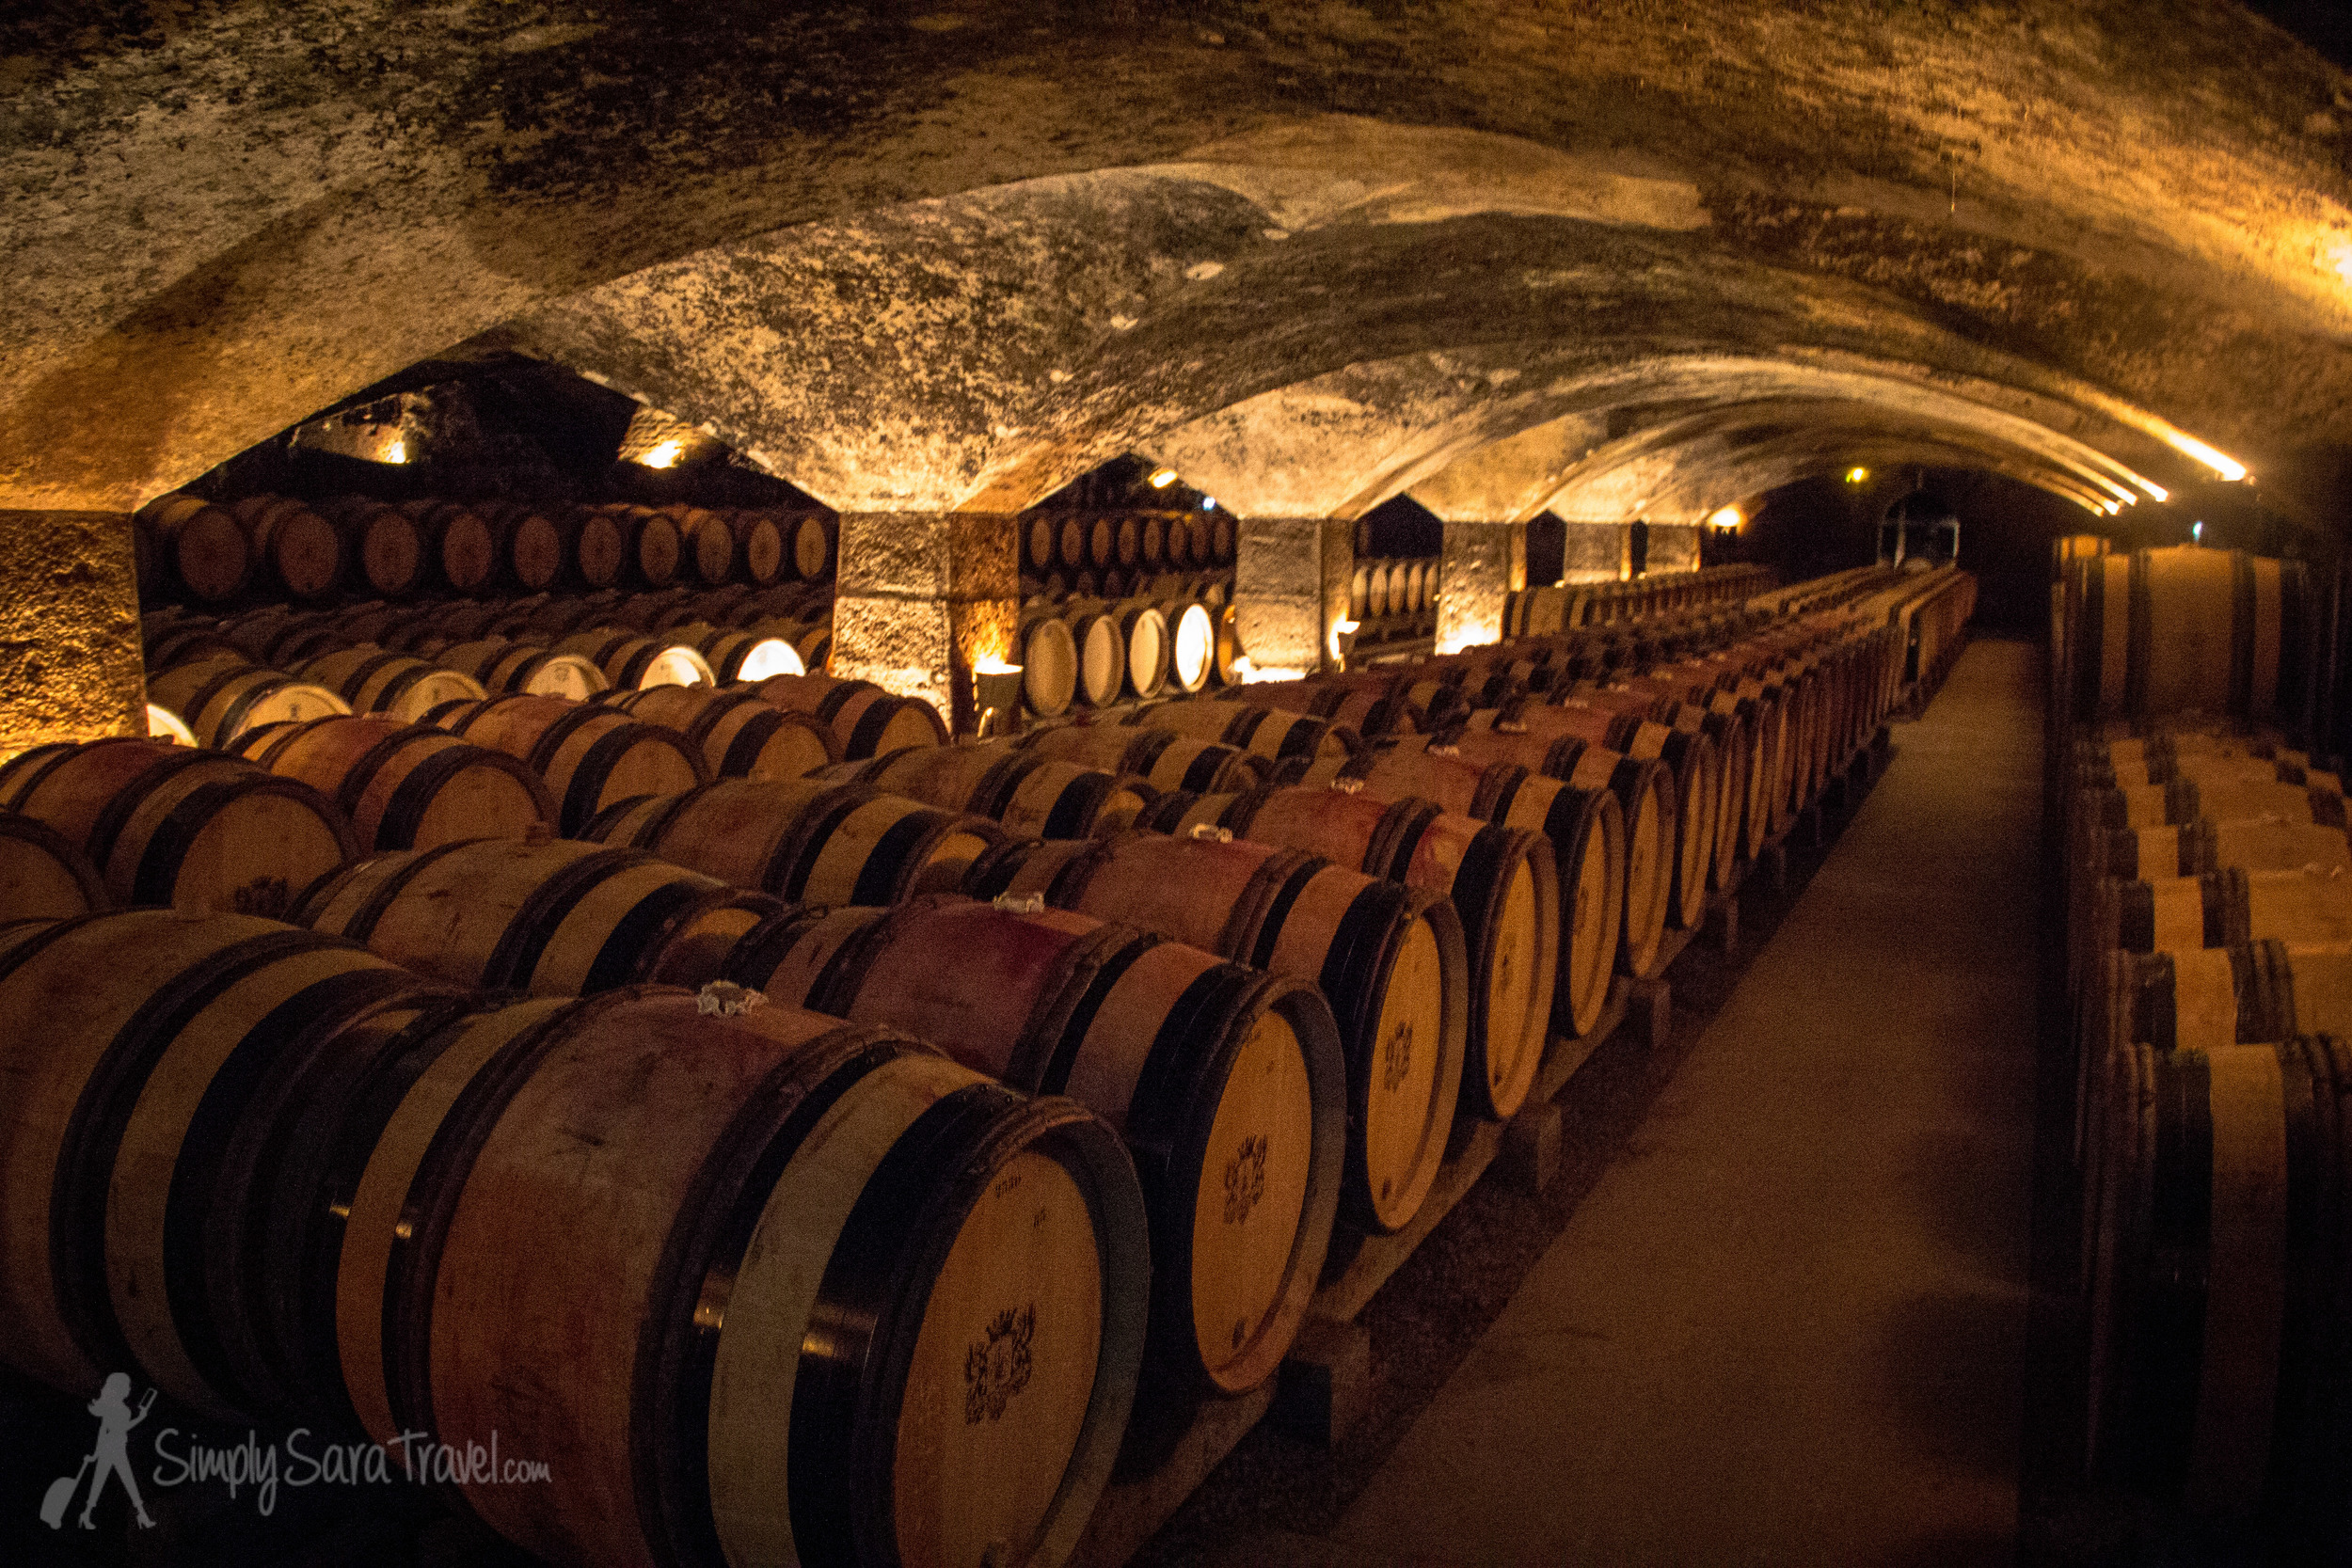 Then we entered this cave, said to be the most beautiful in Bourgogne.